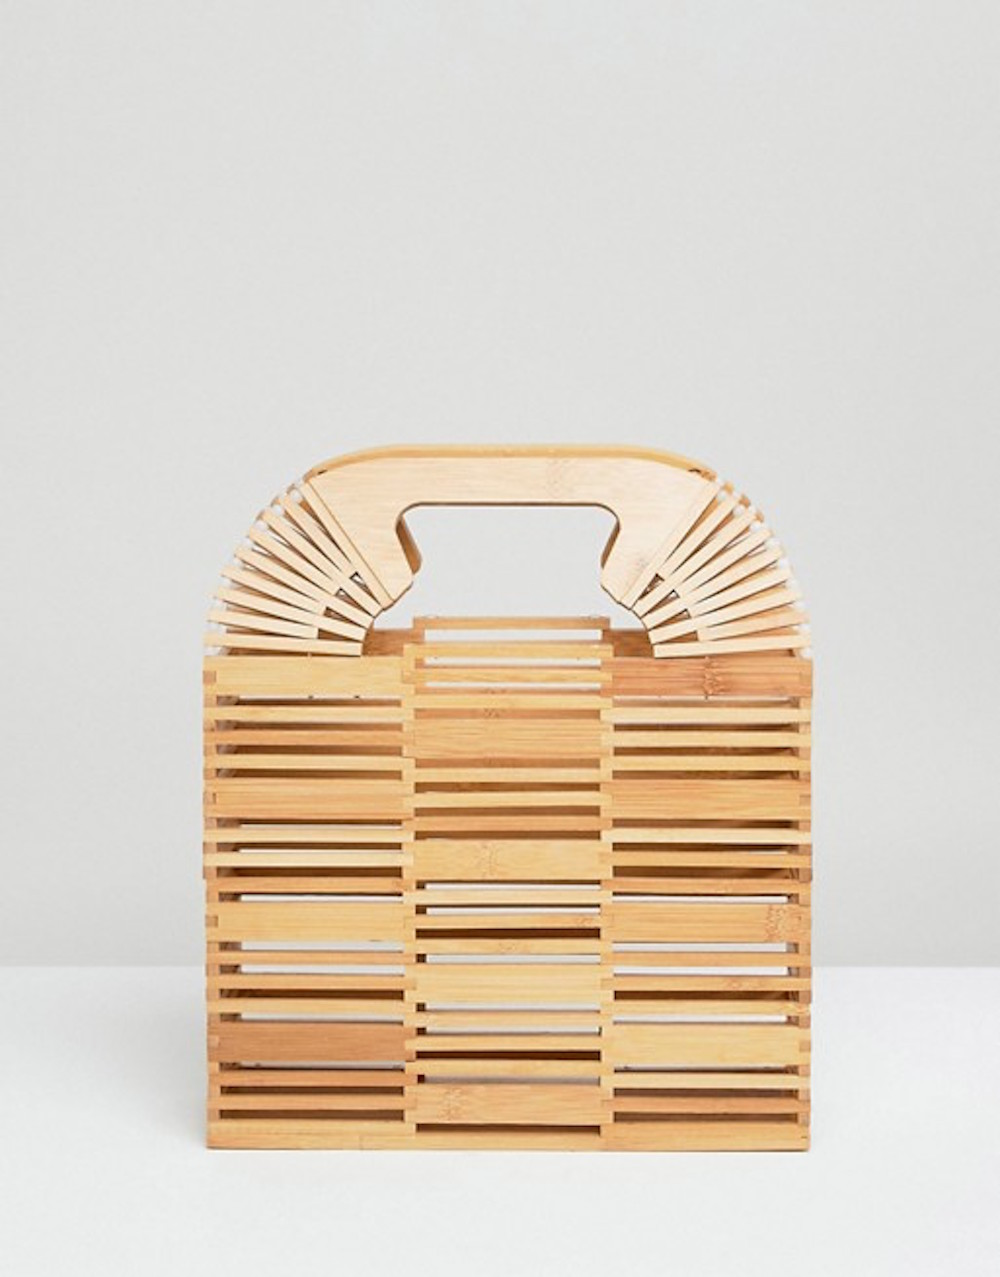 ASOS DESIGN Square Boxy Clutch - £35 at ASOSBuy now (different colourway)*